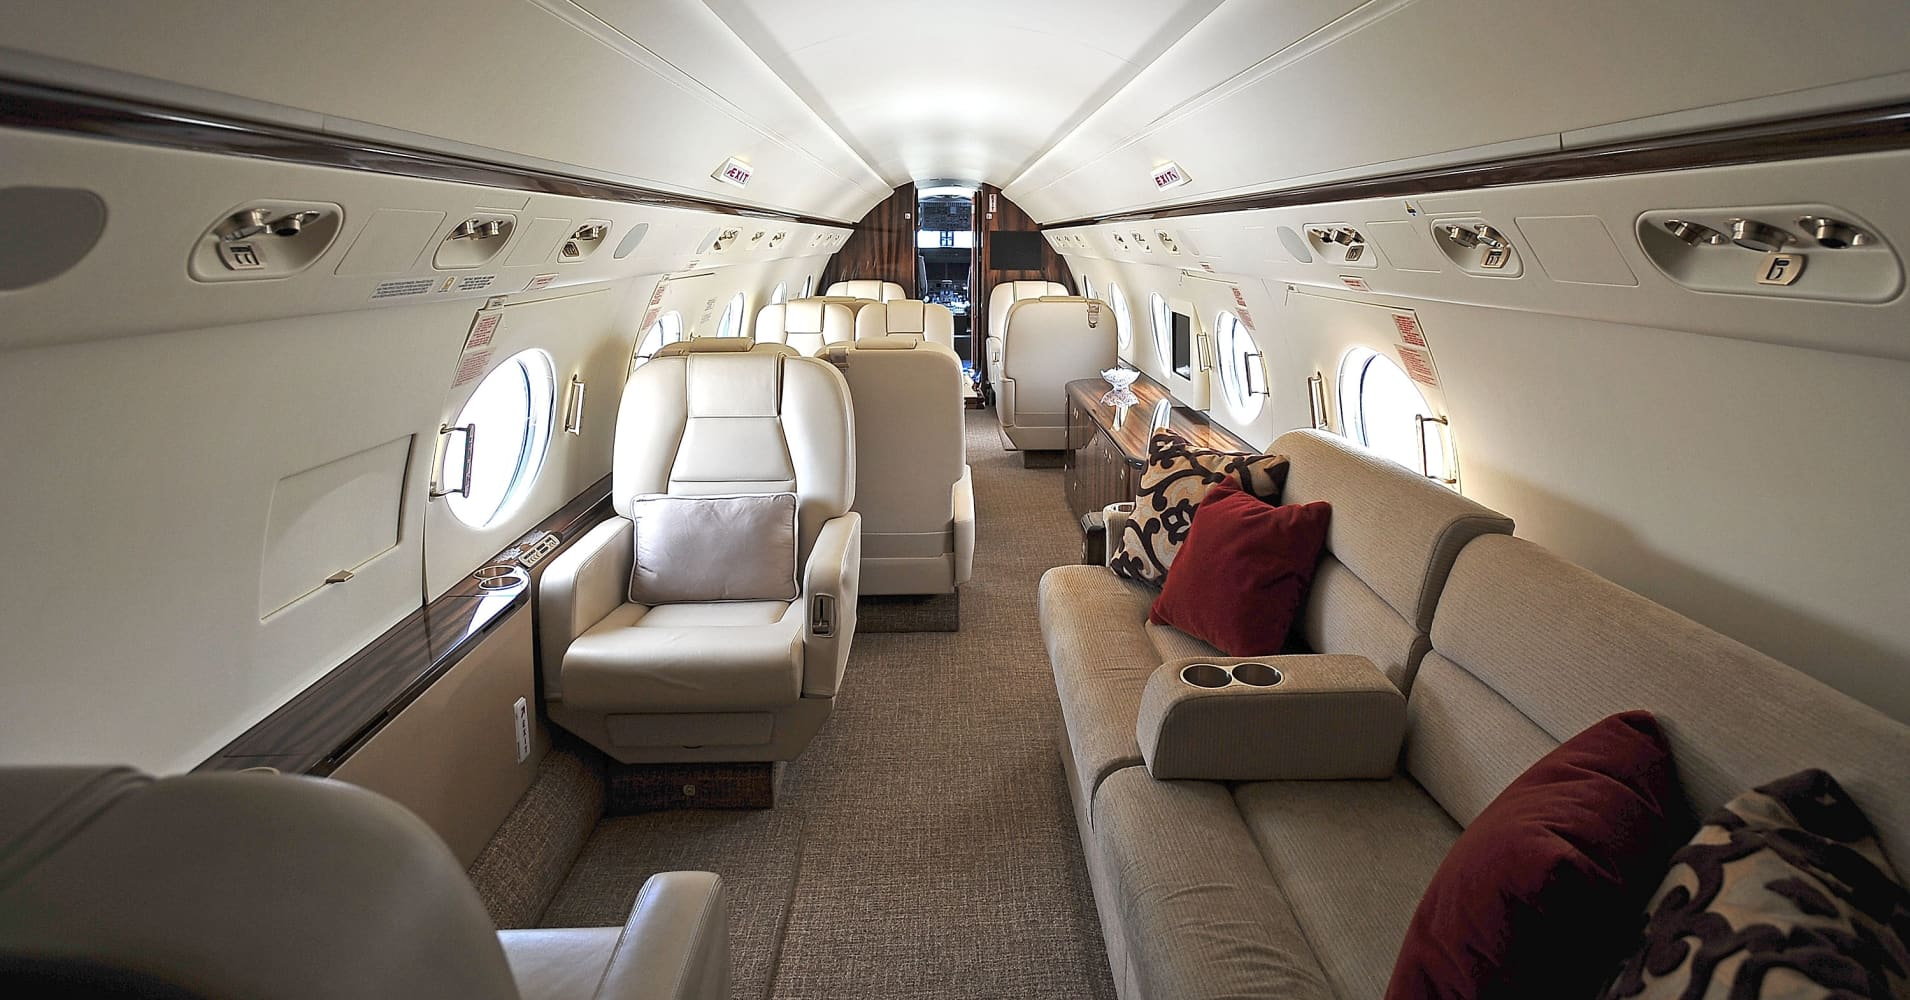 New Dogfight Between Obama and Private Jet Industry